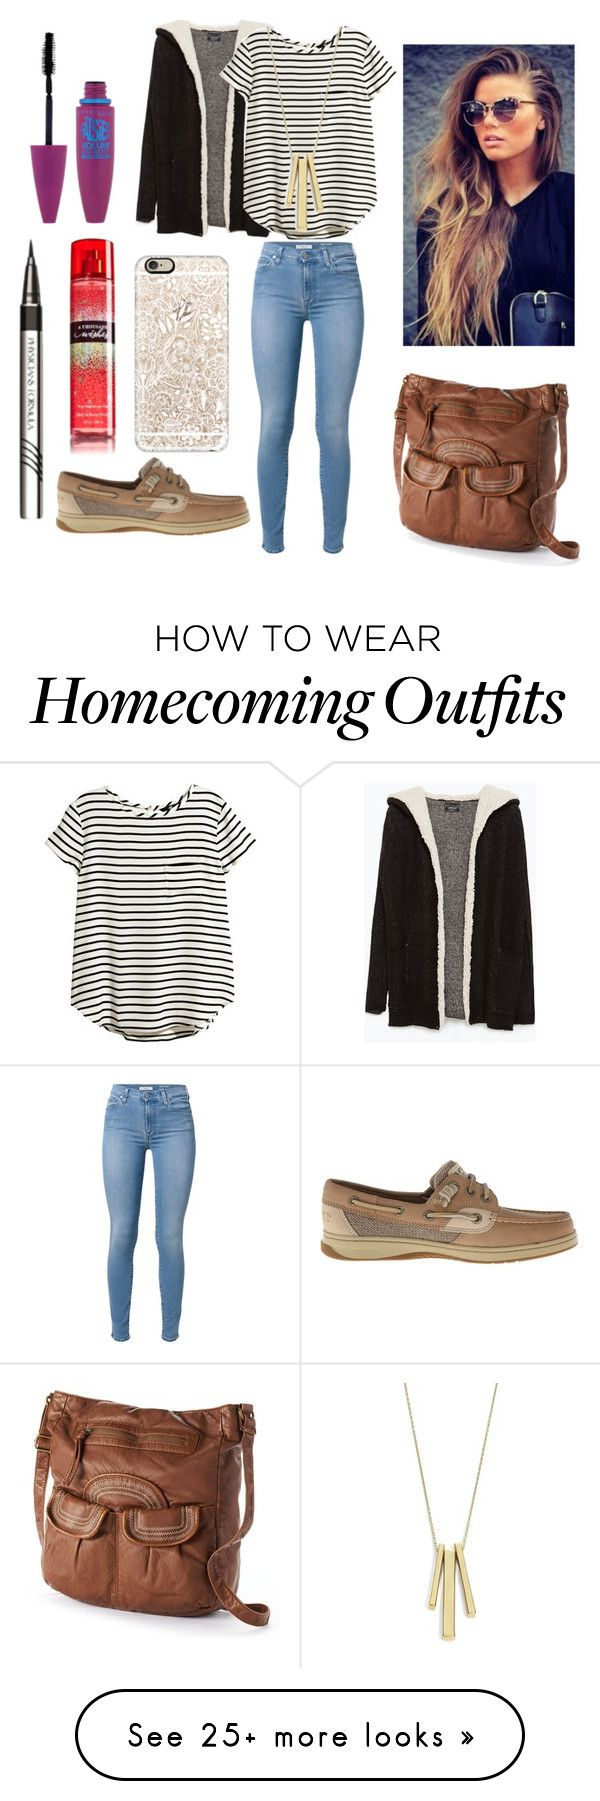 """""""Untitled #233"""" by rileydance18 on Polyvore featuring Casetify, 7 For All Mankind, Zara, H&M, Sperry Top-Sider, Mudd, Maybelline and Lauren Ralph Lauren"""